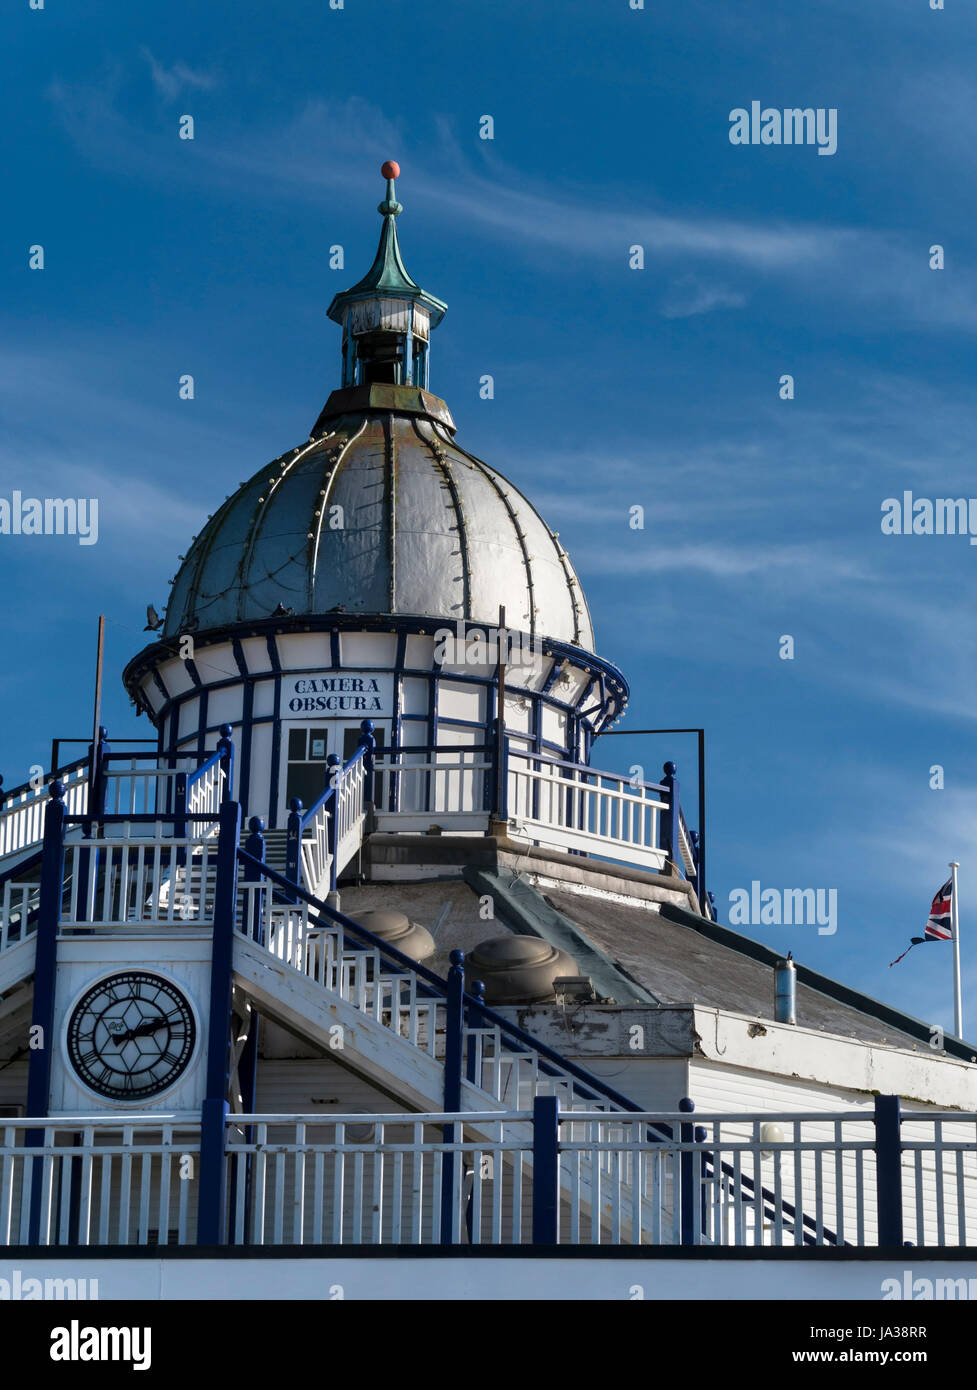 Ornate domed cupola and zinc roof with finial of the Camera Obscura, Eastbourne Pier, East Sussex, England, UK. Stock Photo